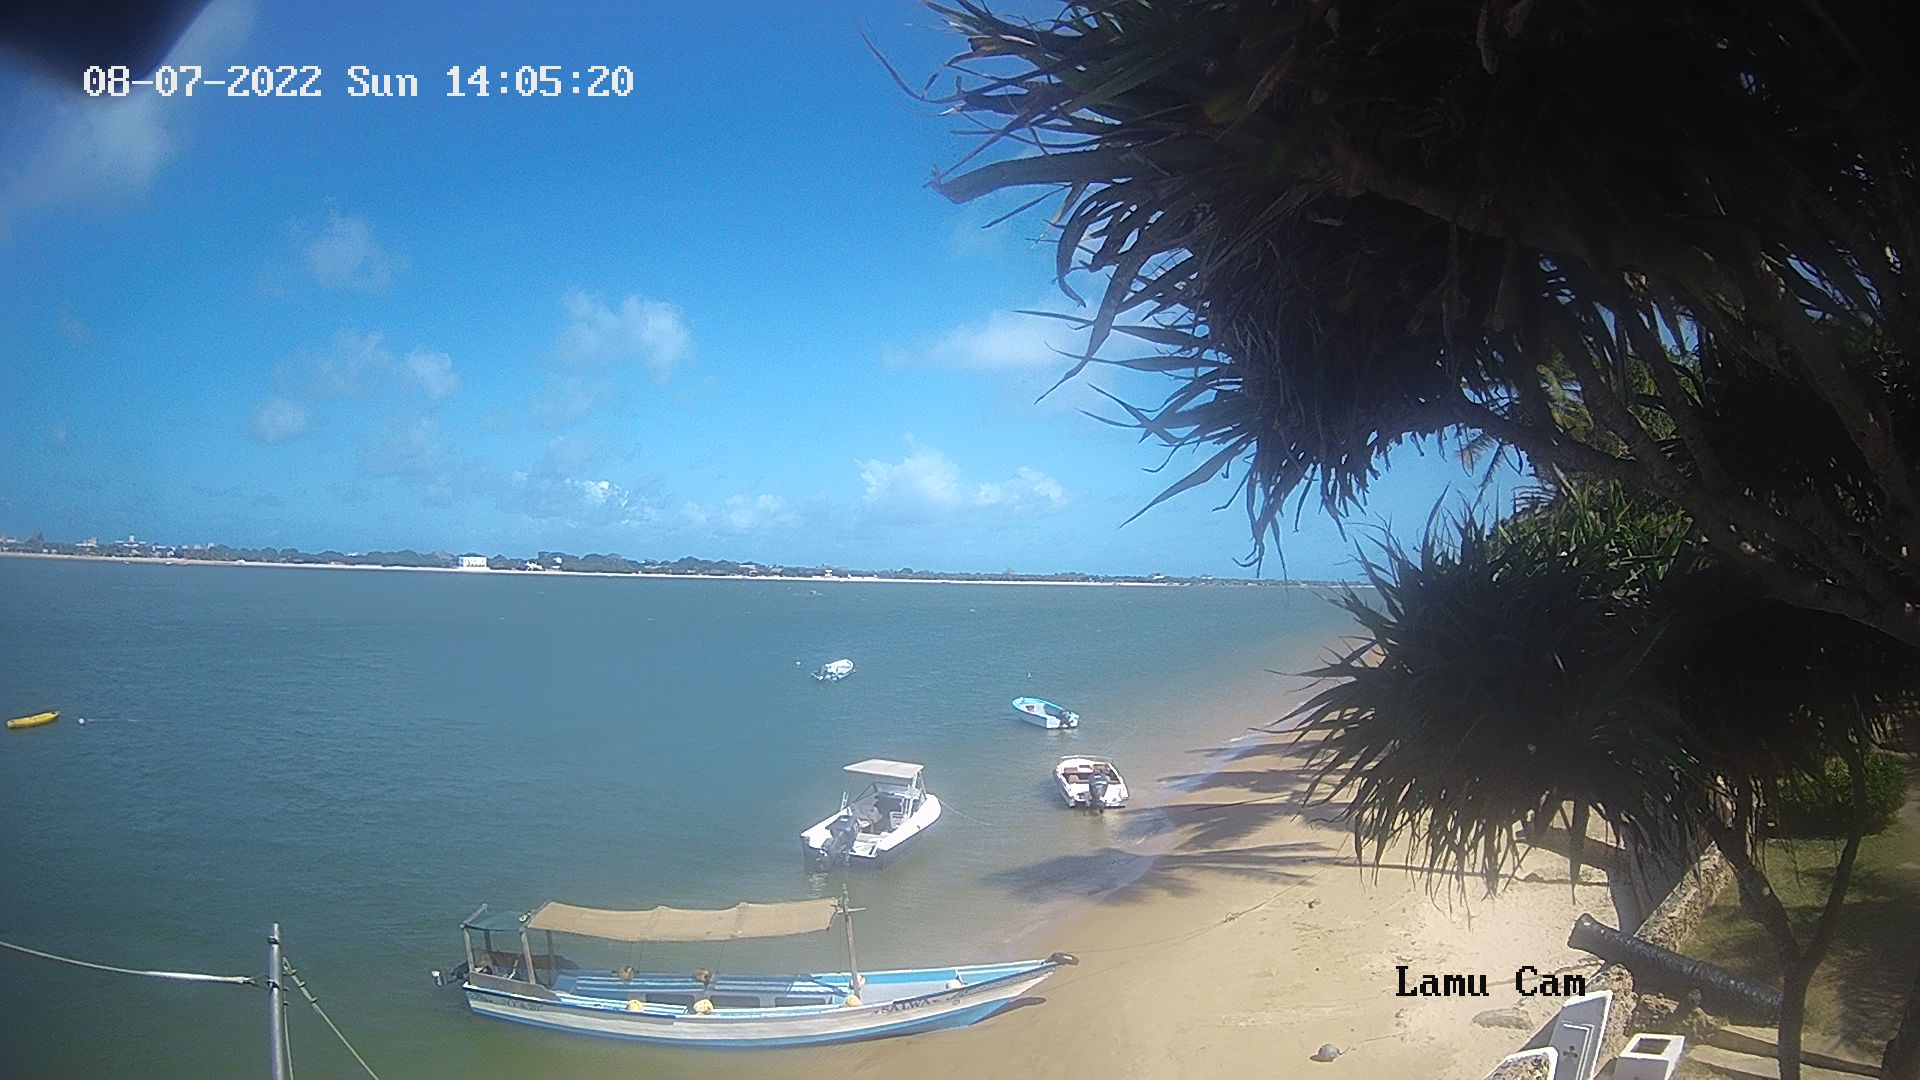 Lamu webcam - Lamu Island webcam, Coast Province, Lamu District